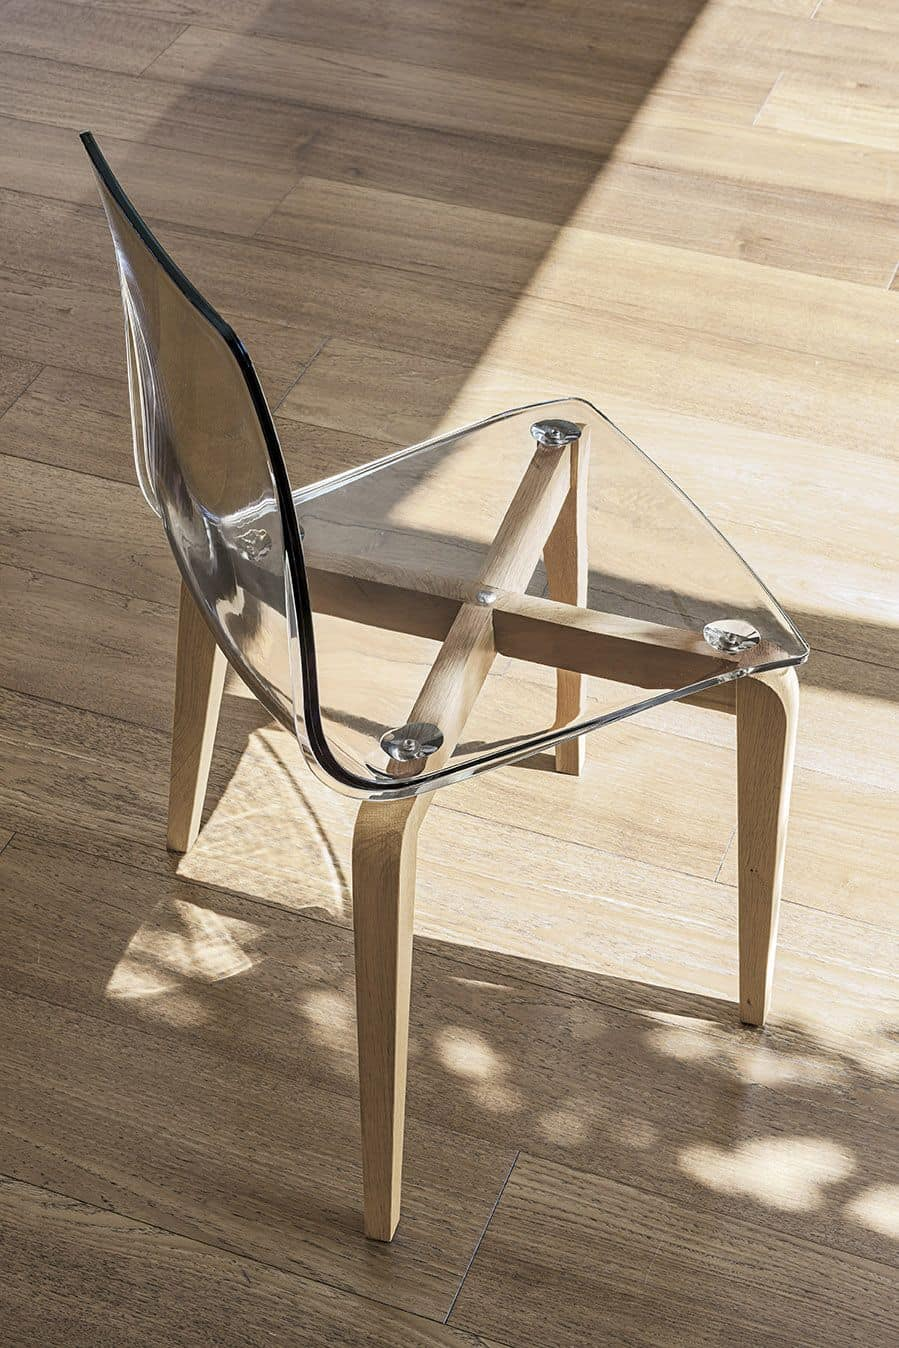 BERLINO SE506, Chair with wooden frame, polycarbonate seat, modern style